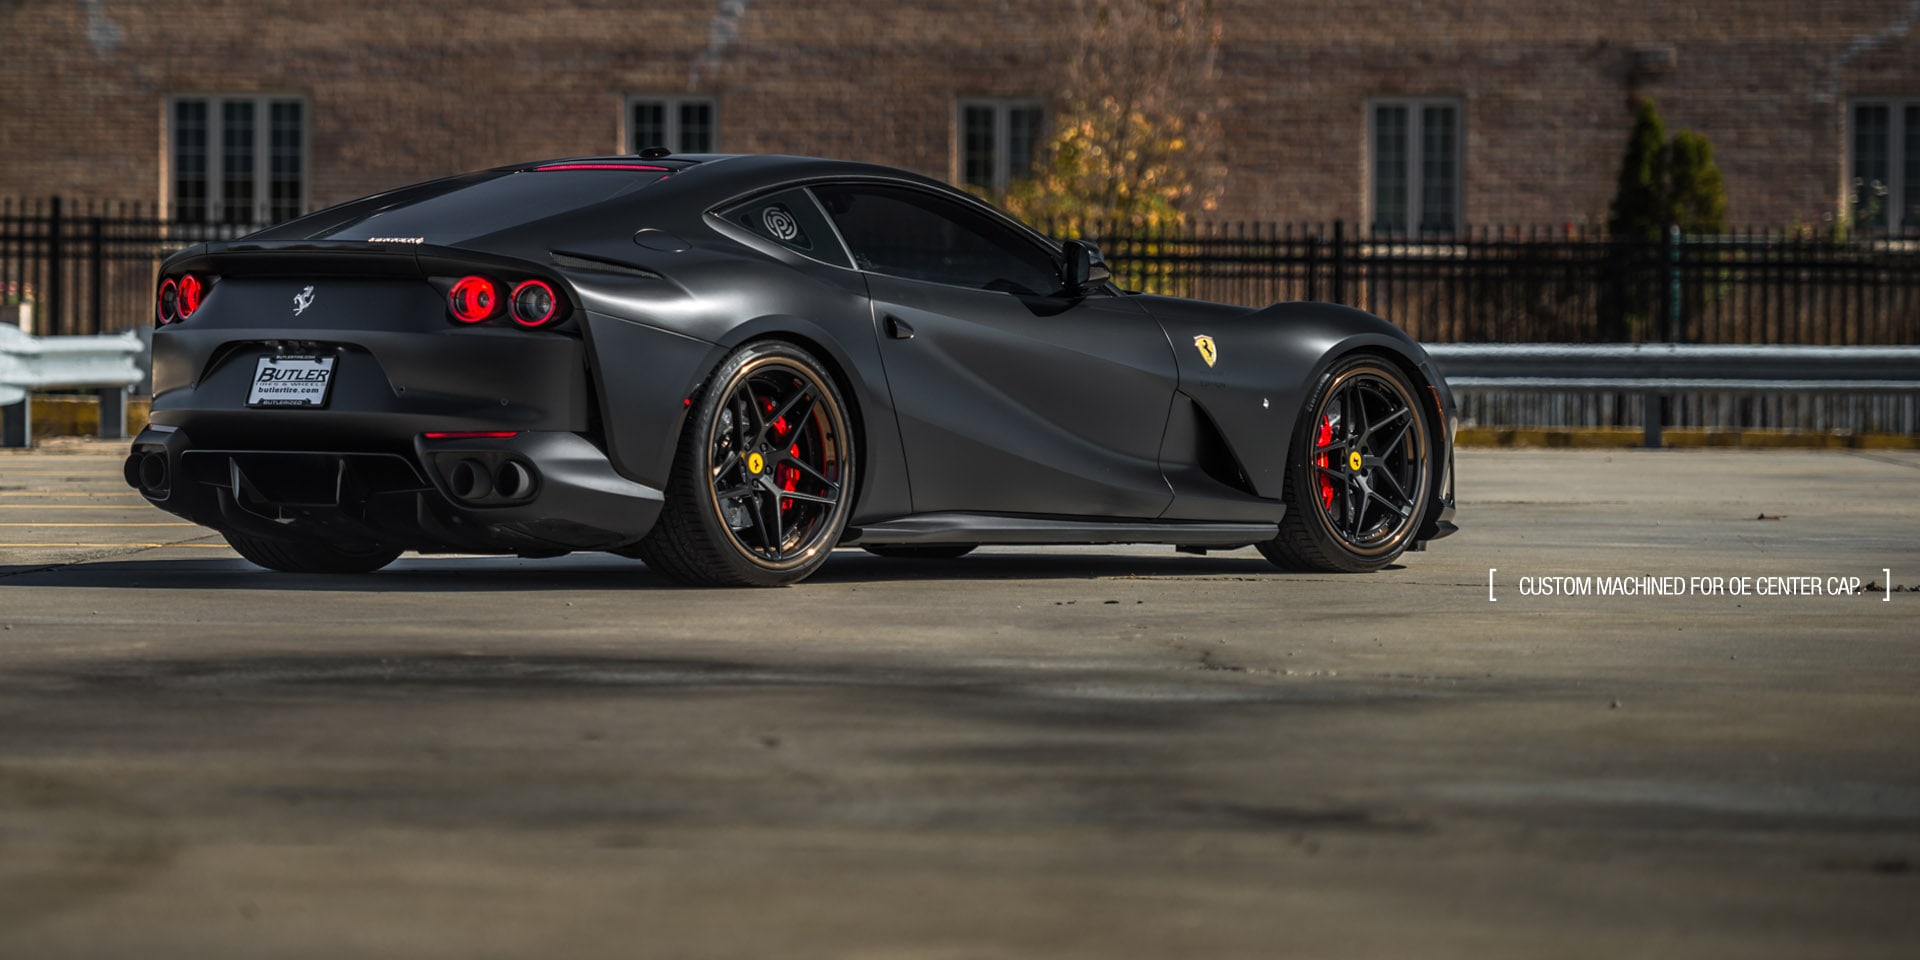 ferrari 812 superfast matte black wrapped agluxury wheels agl42 21in 21inch staggered matte black butler tire atlanta midnight wraps